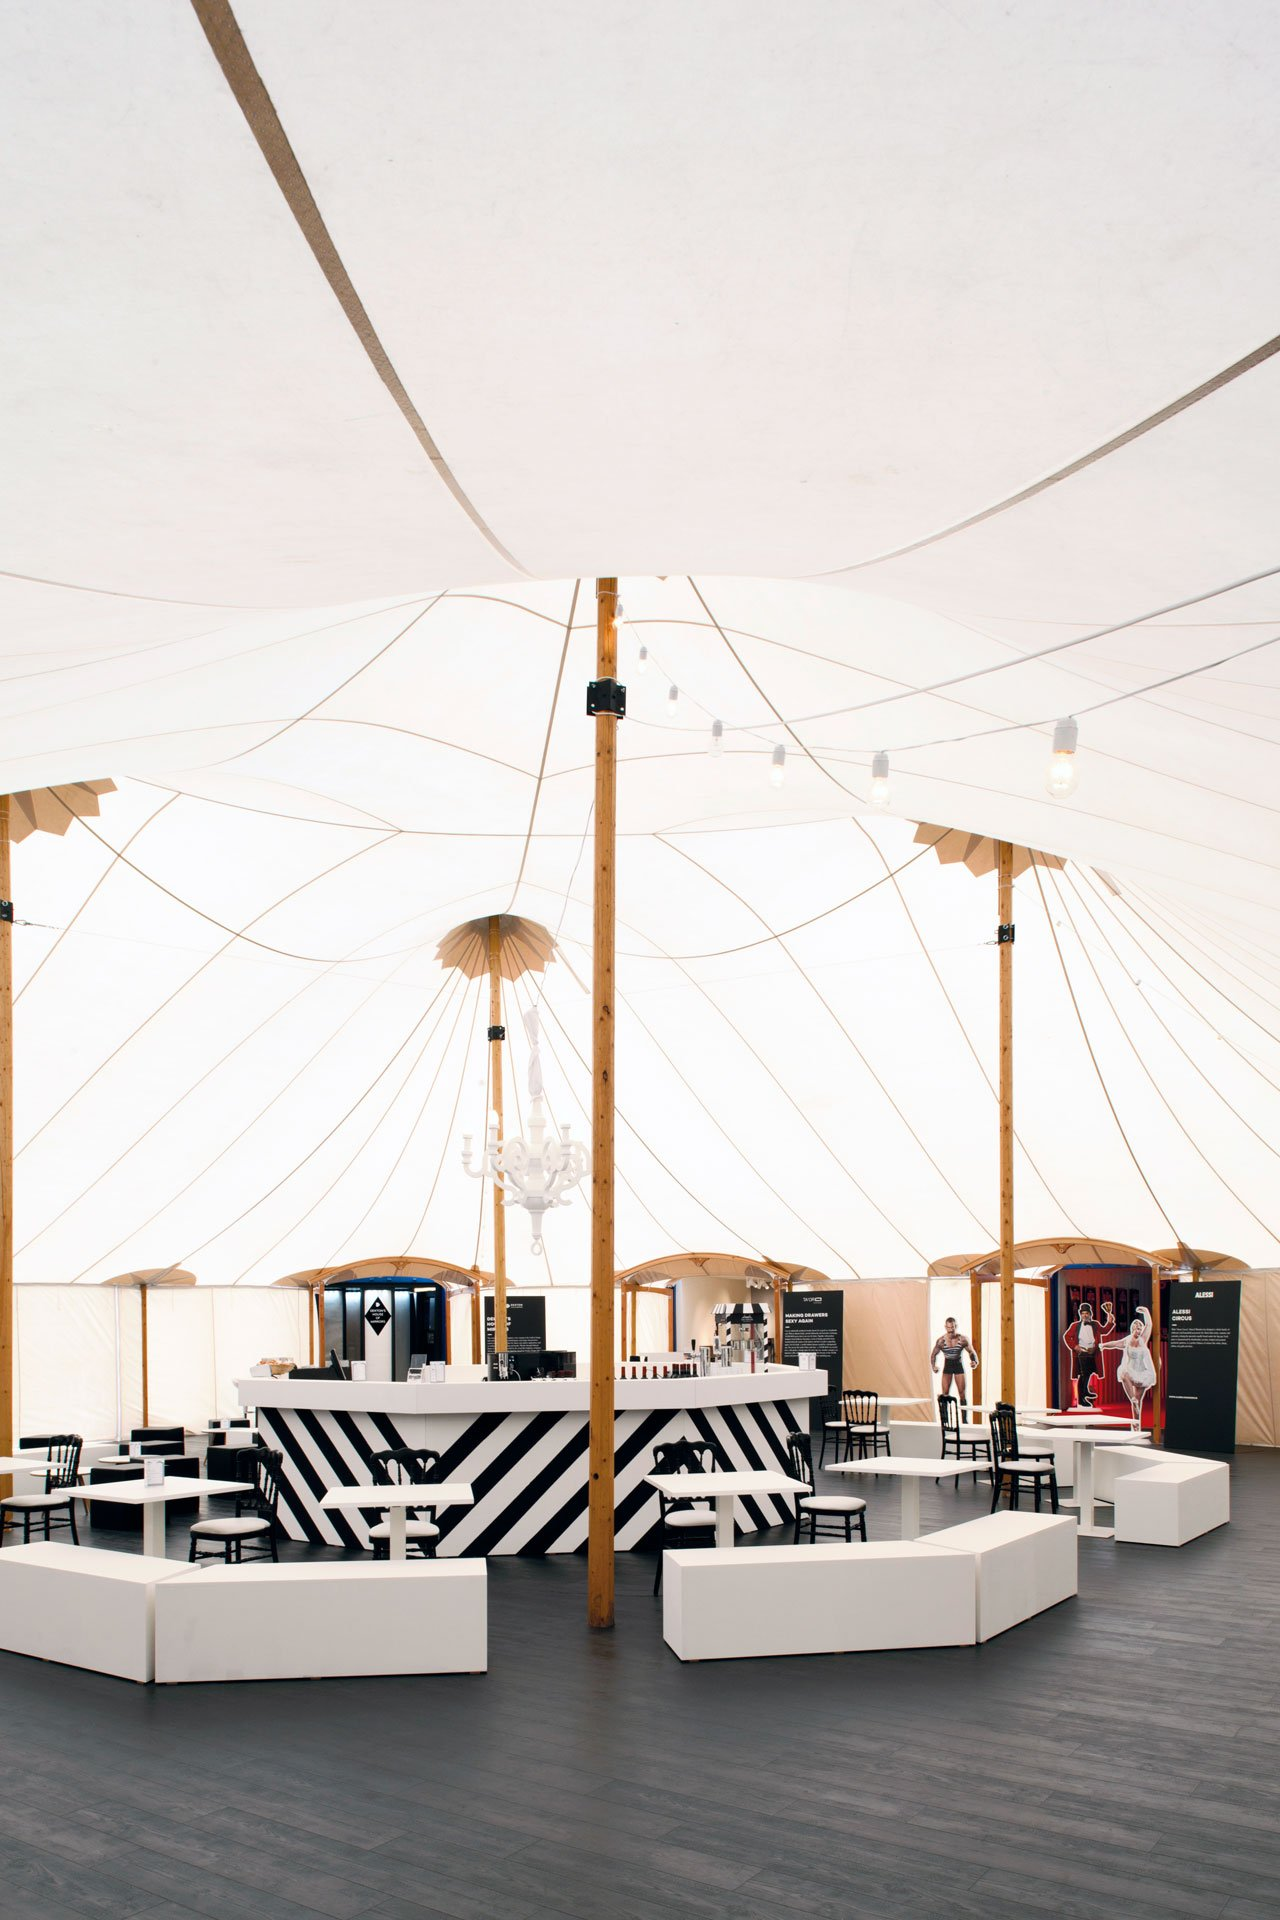 The Circus by King George agency: A pop-up installation connected to the fair where 8 design brands showcase a specific concept in containers in a stylish tent.